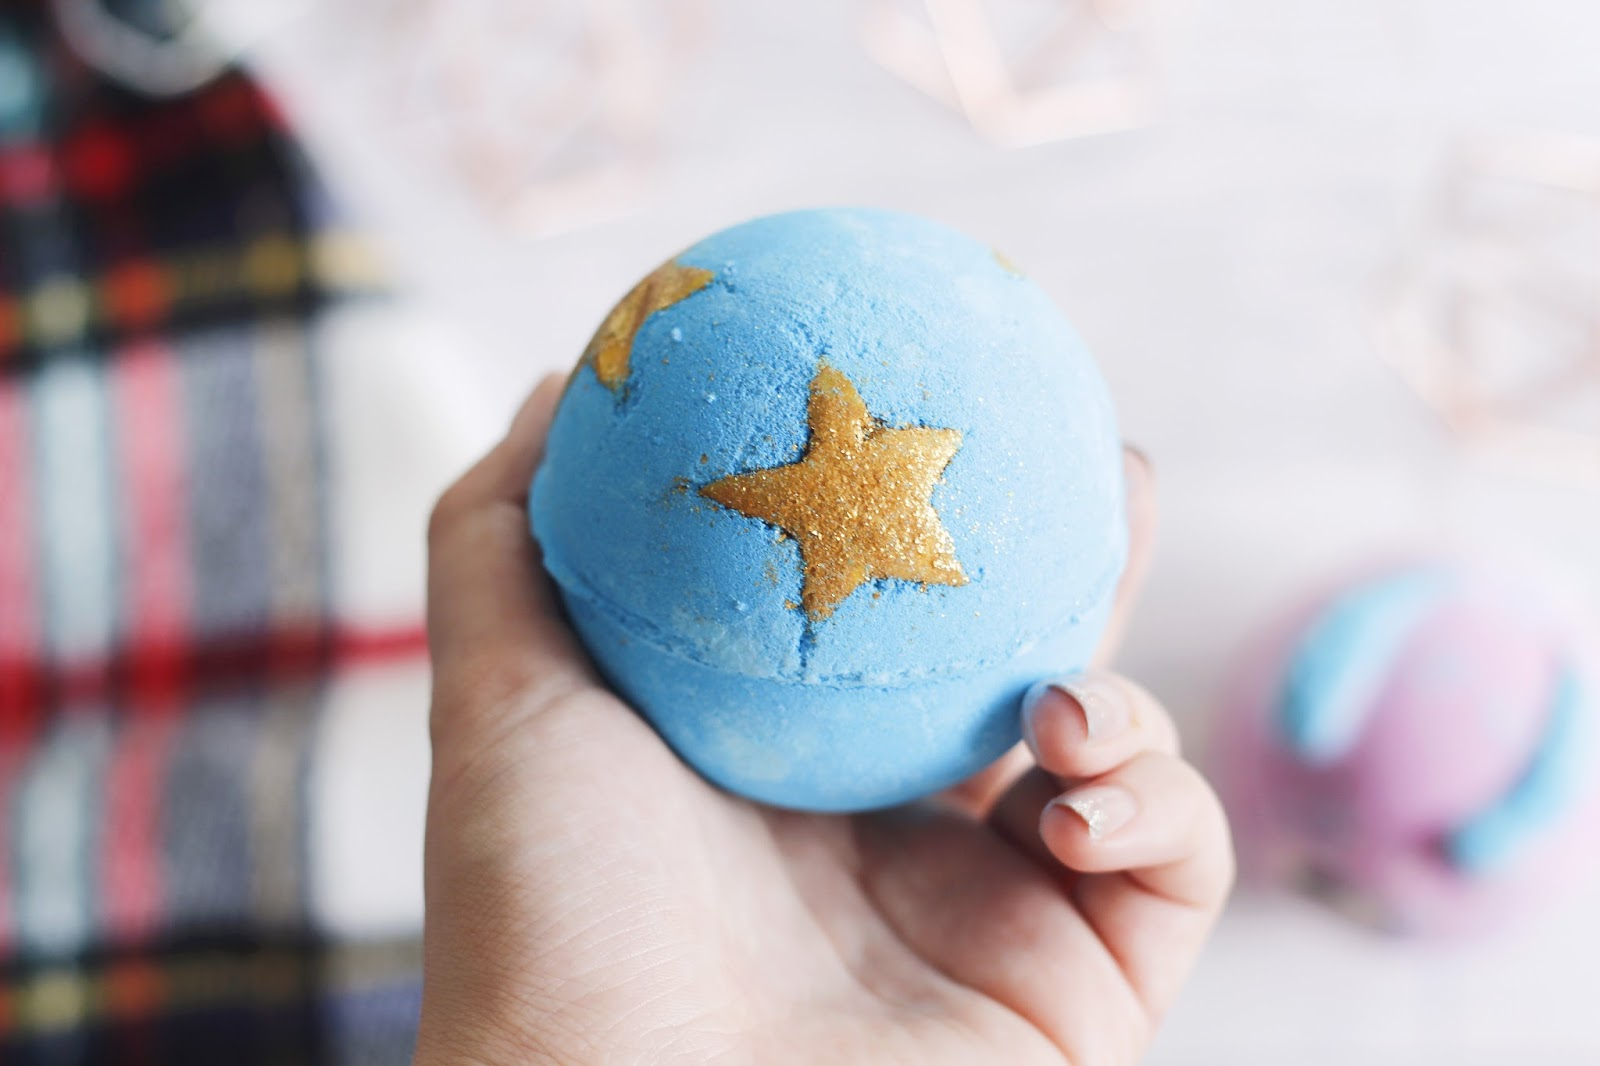 Lush Halloween & Christmas Haul - Shoot For The Stars Bath Bomb